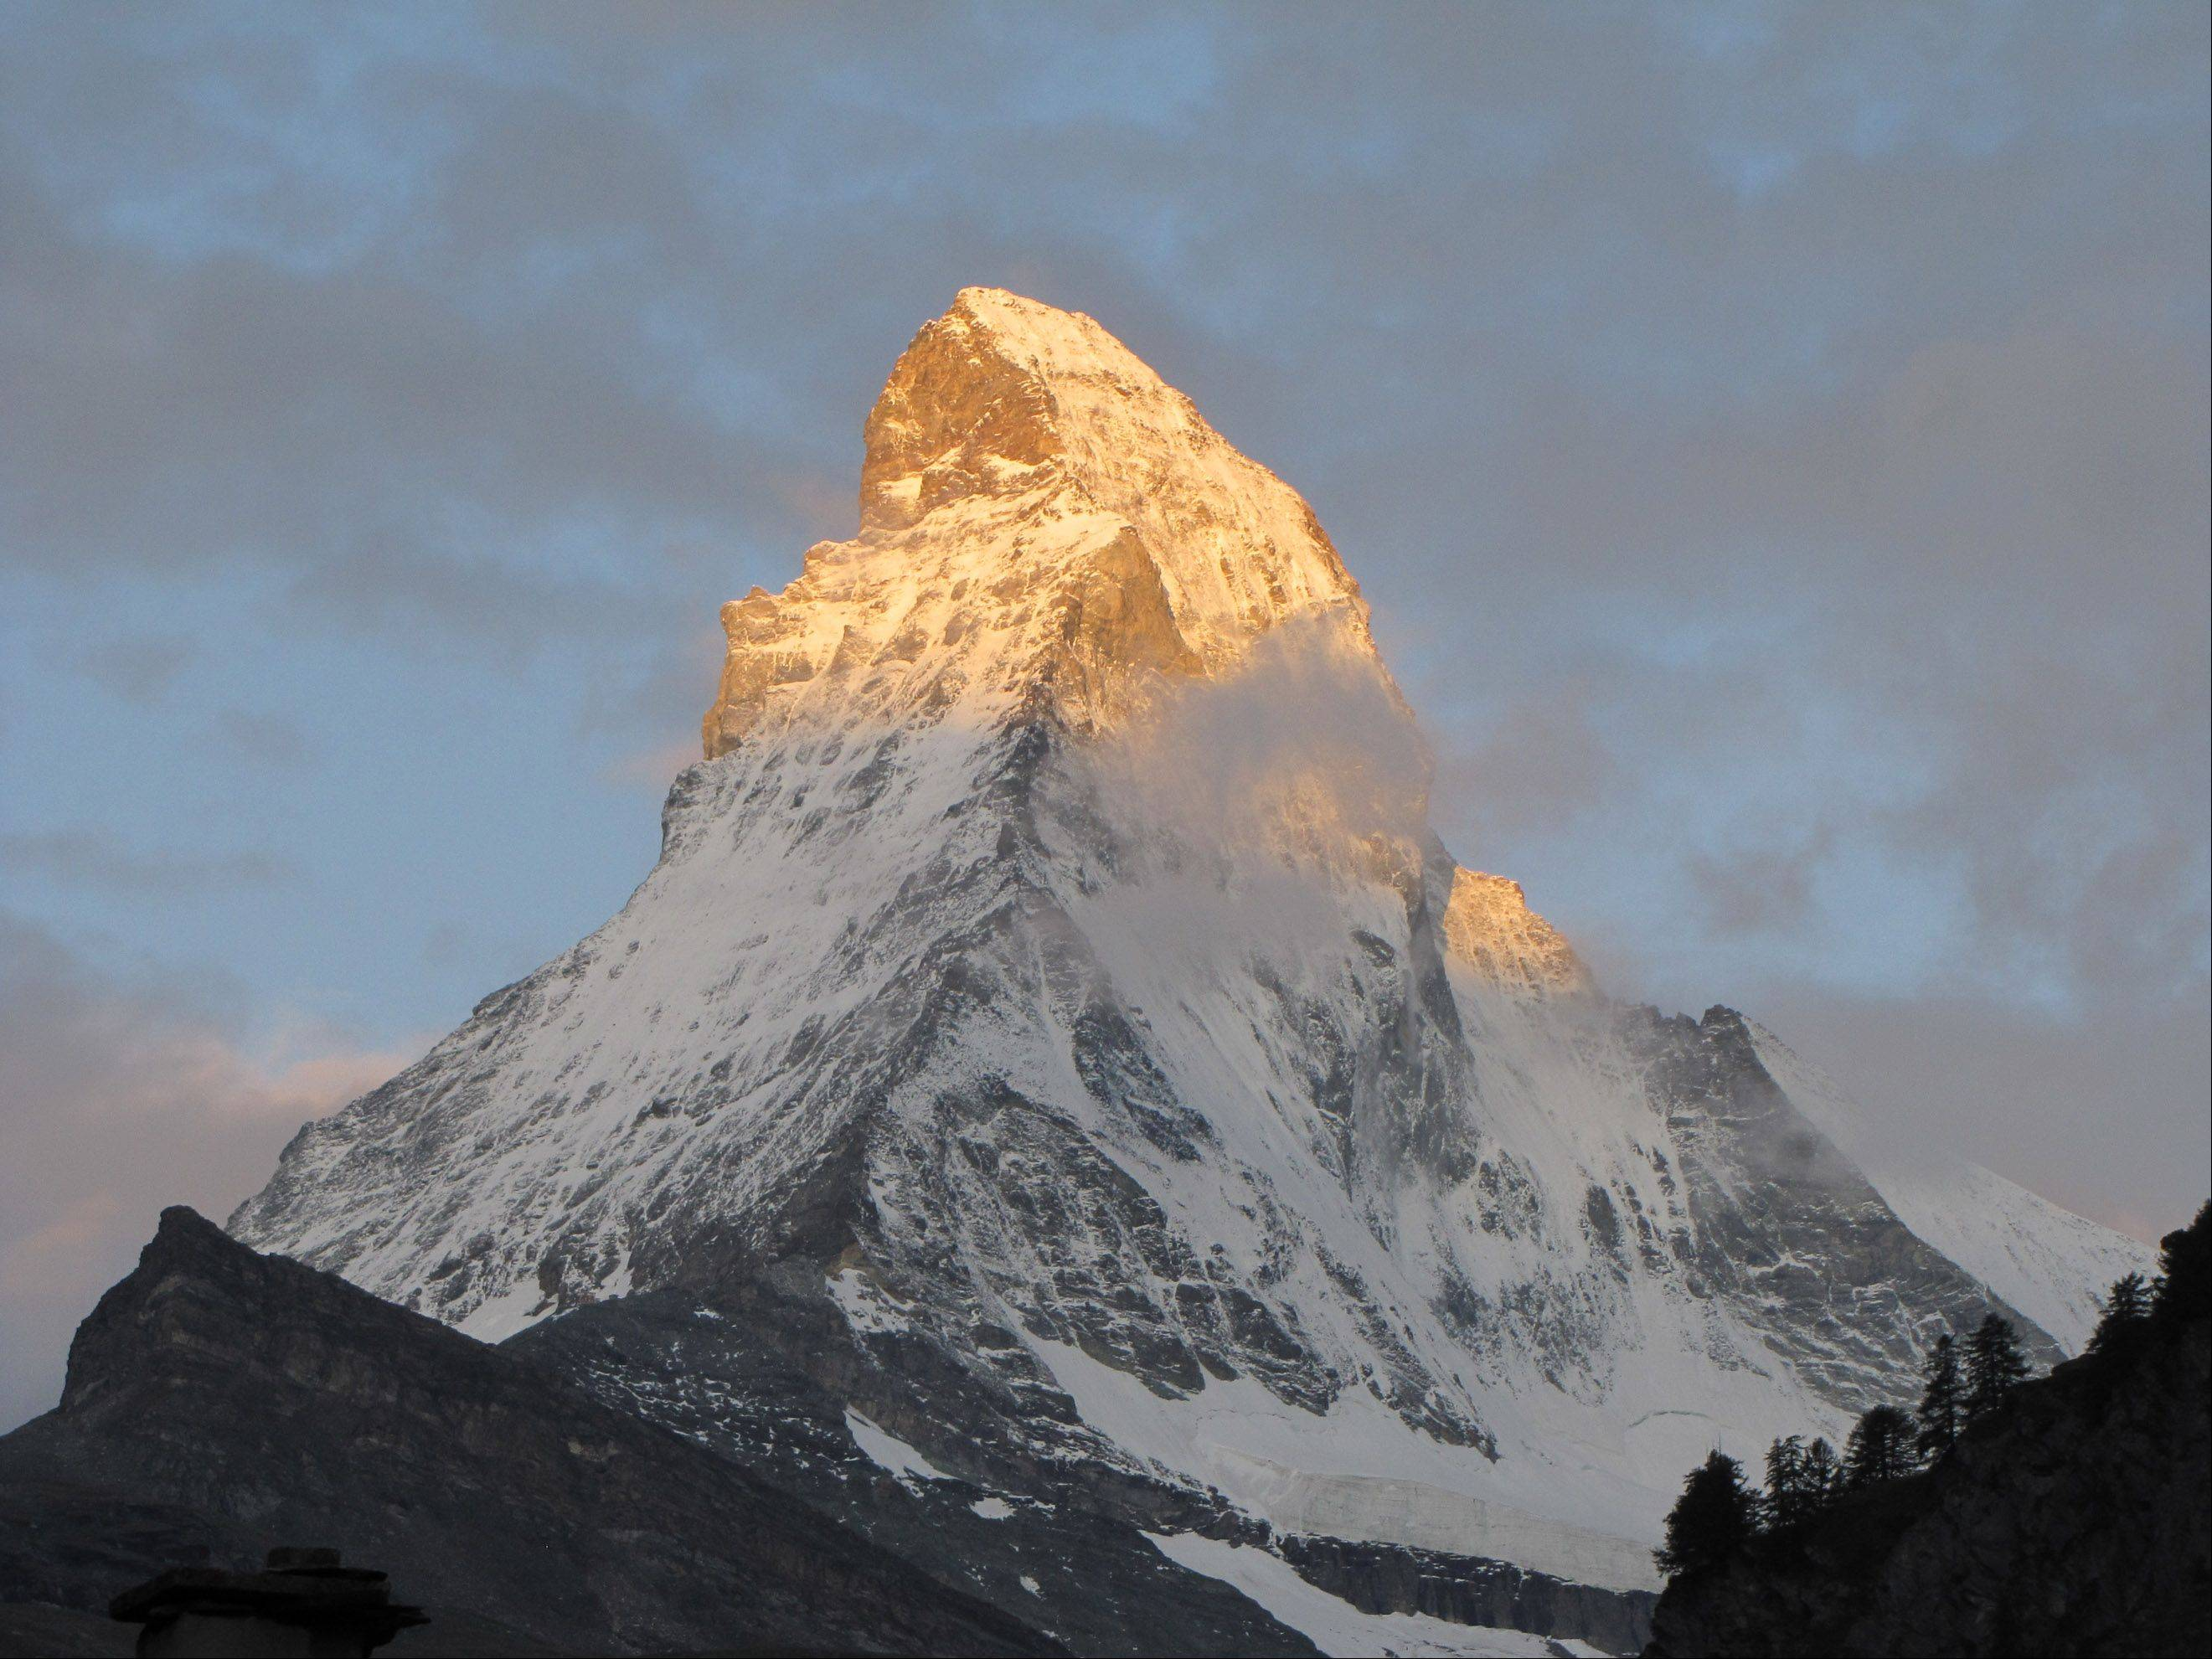 Sharon T. Goodman of Warrenville was in Zermatt, Switzerland, when she captured this image of the Matterhorn.